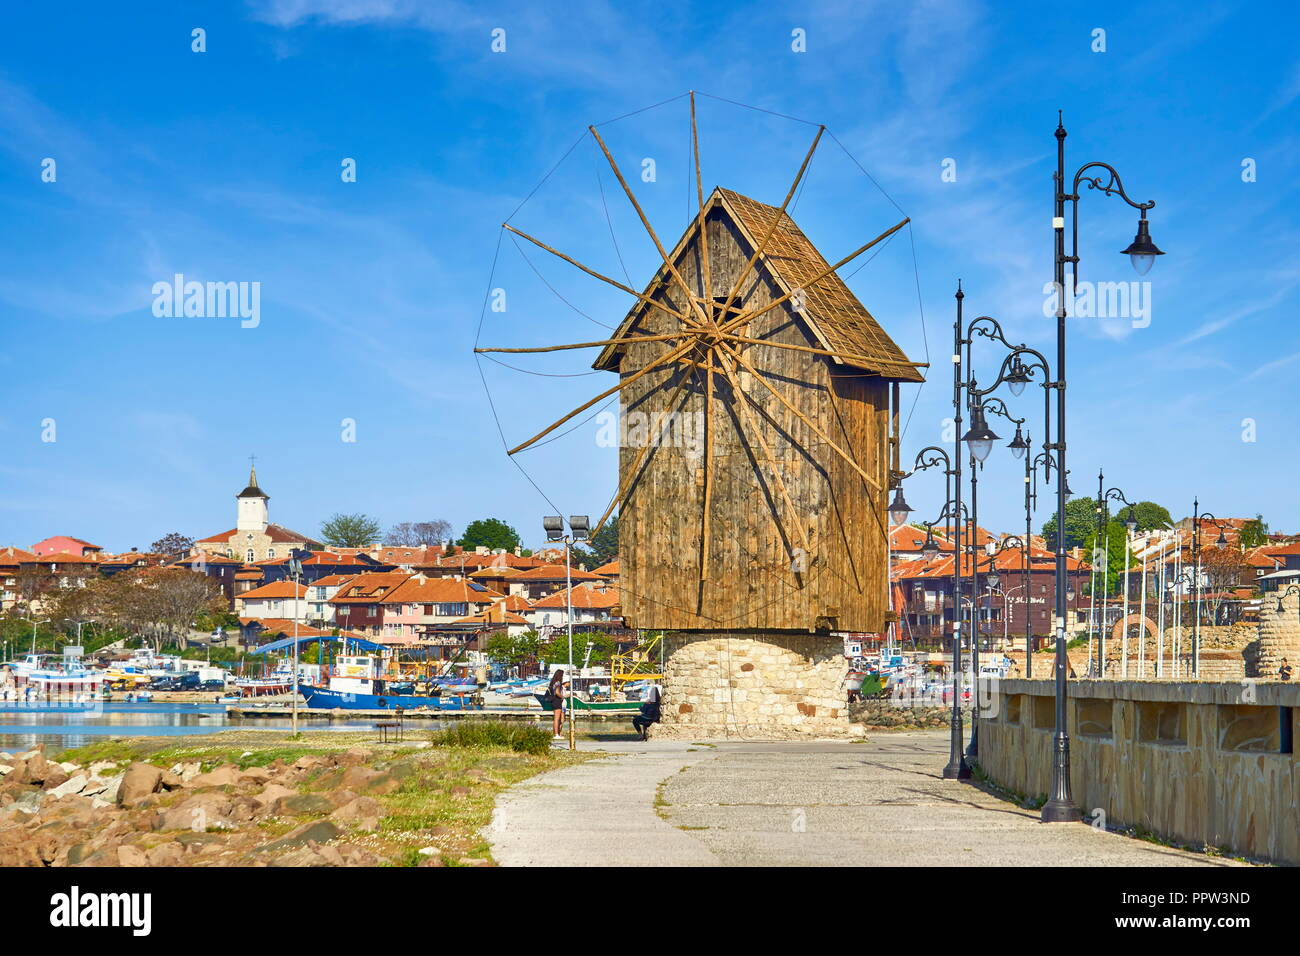 Wooden windmill, old town Nessbar, Bulgaria - Stock Image